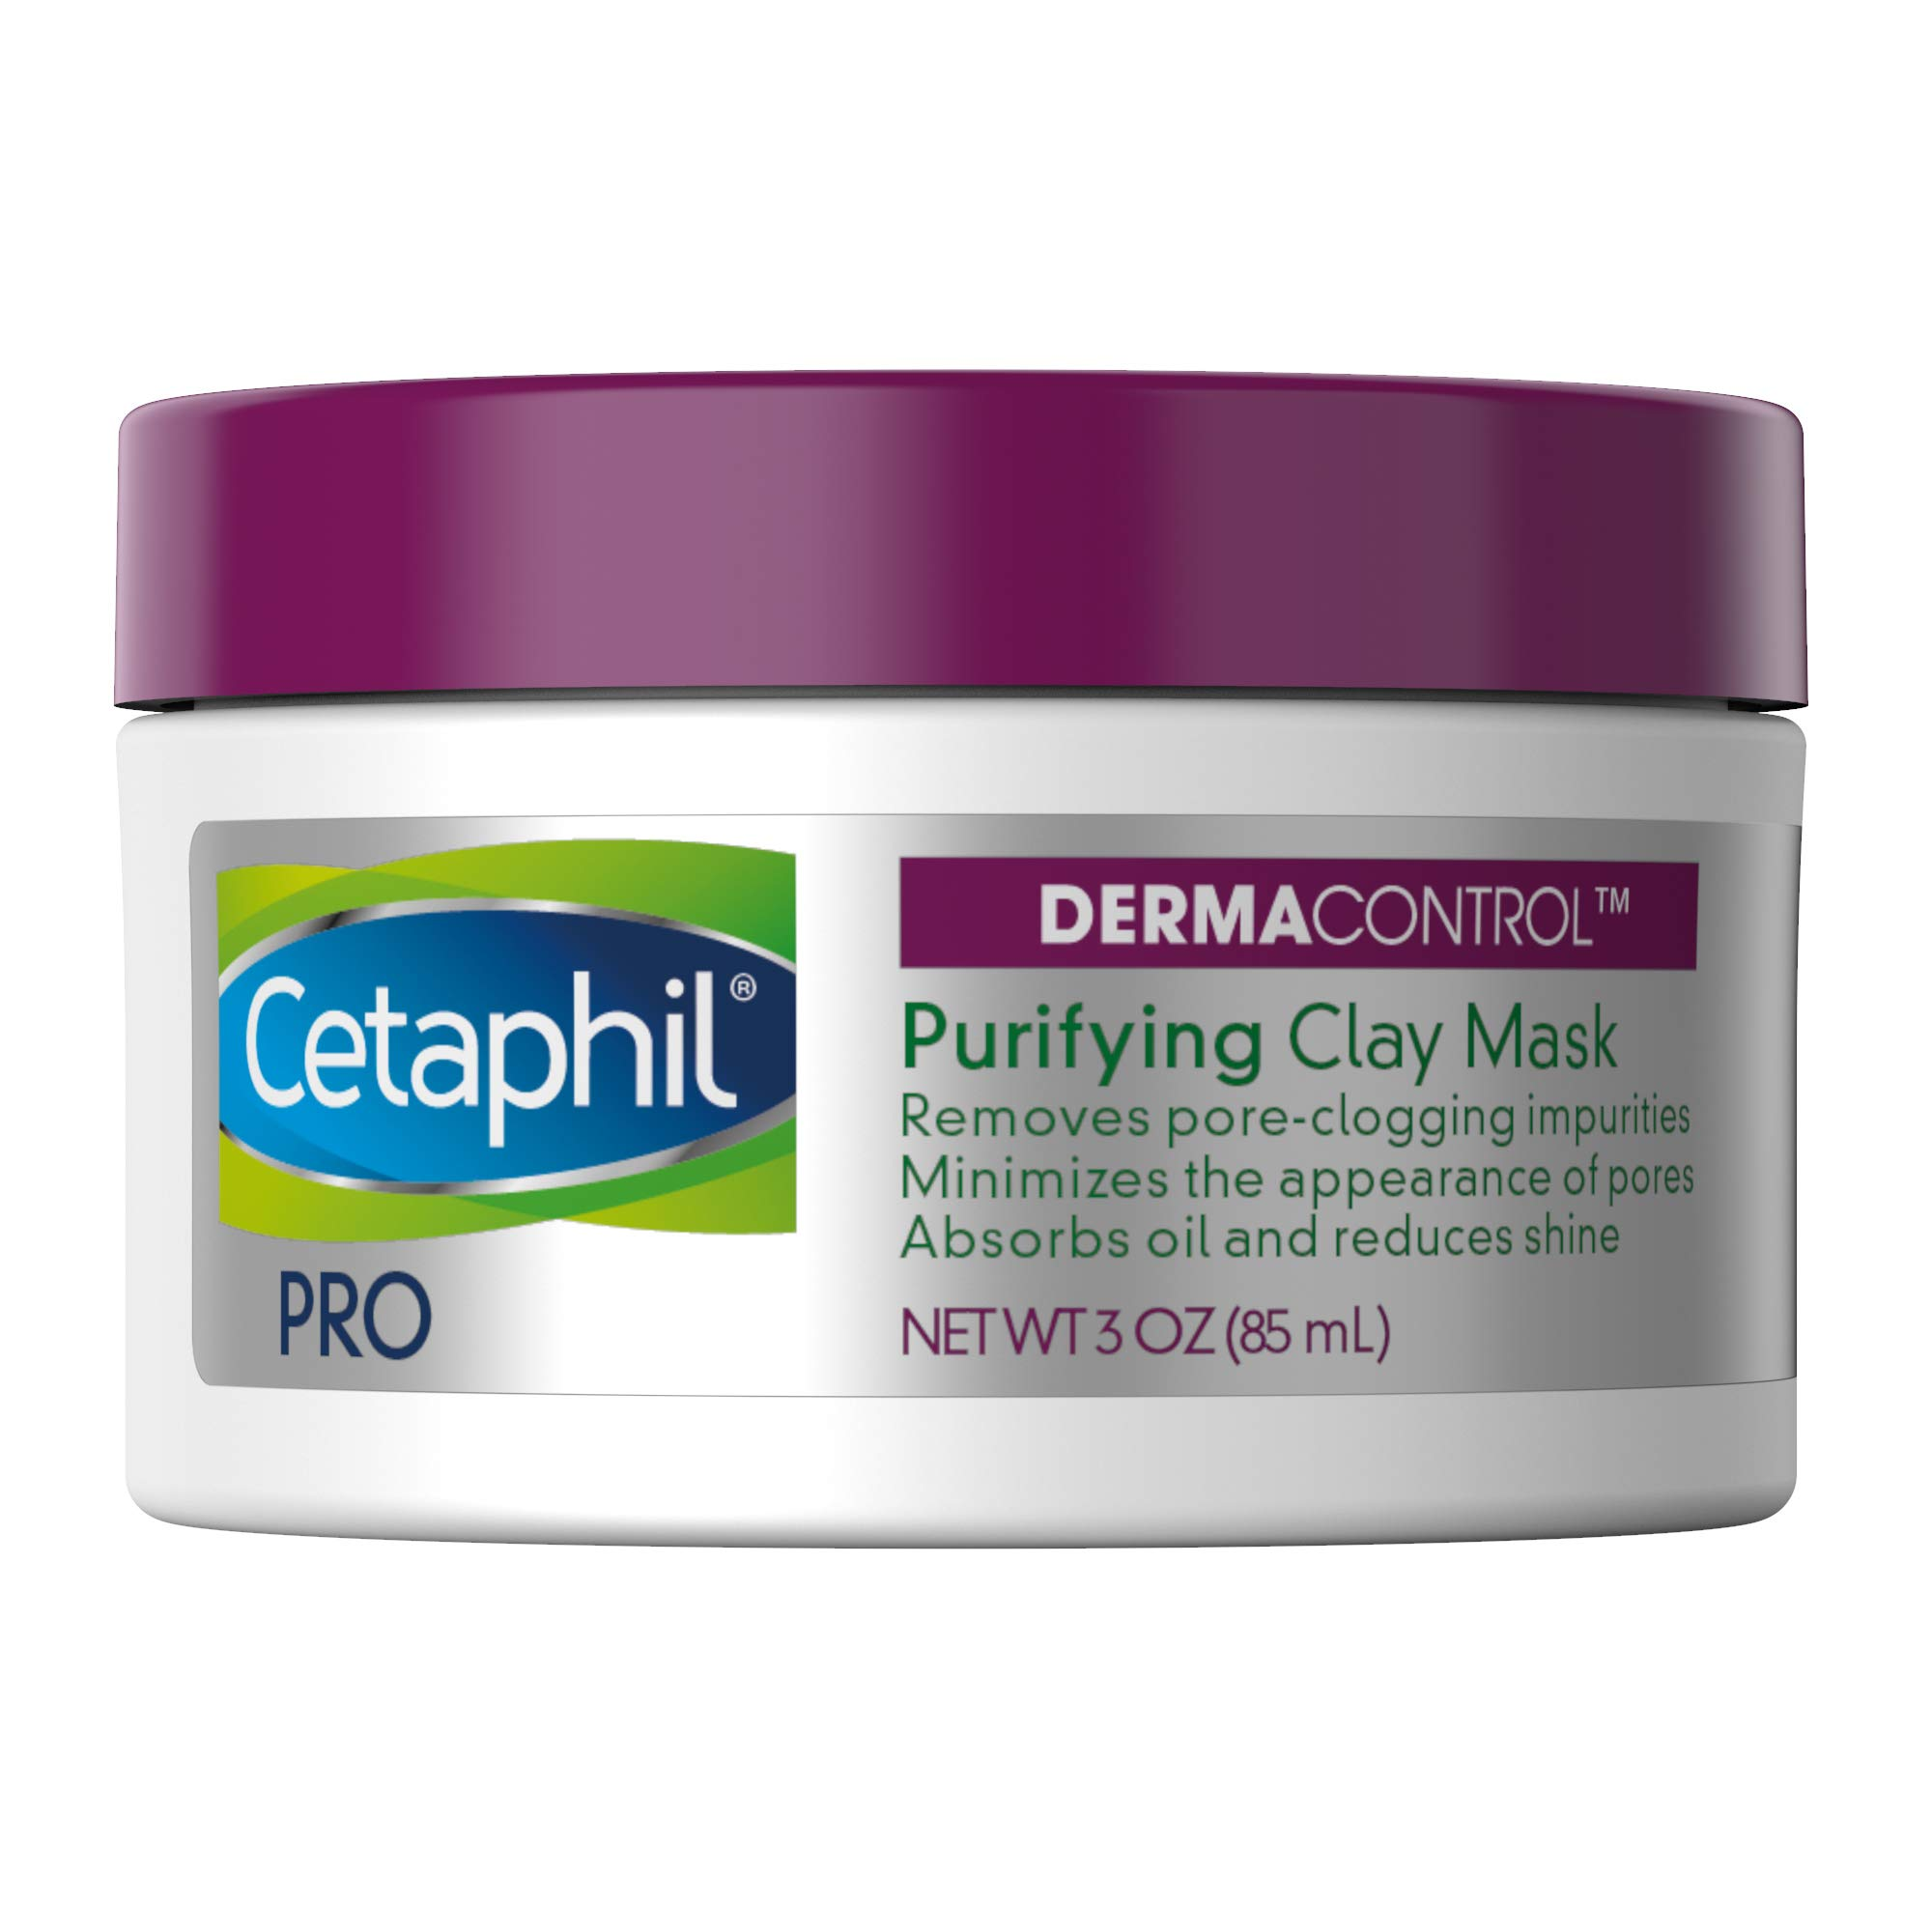 Cetaphil Pro Dermacontrol Purifying Clay Mask with Bentonite Clay for Oily, Sensitive Skin, 3 oz Jar by Cetaphil